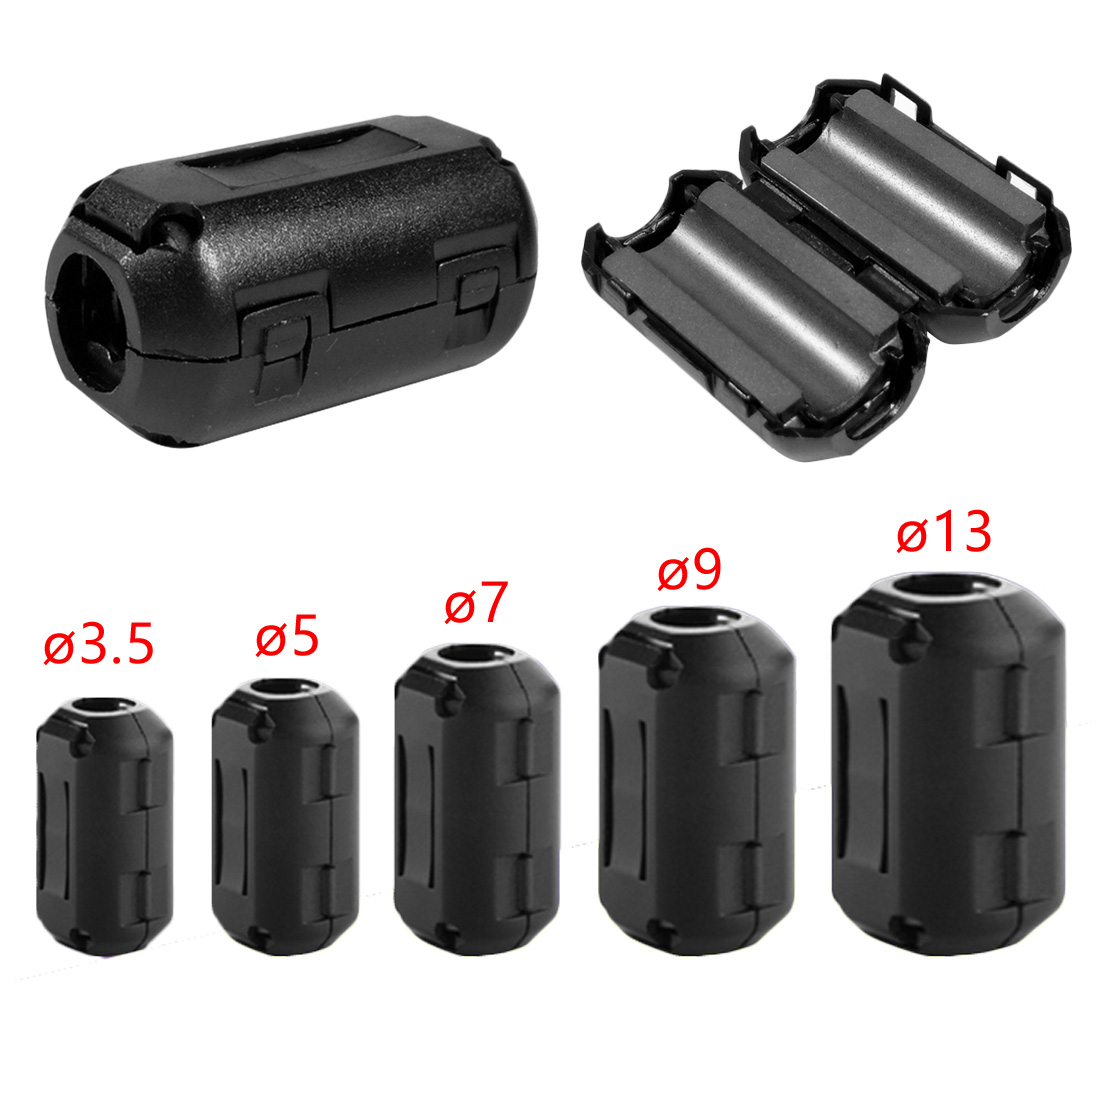 5pcs Black Plastic Clip On EMI RFI Noise Suppressor 5mm Cable Ferrite Core Filters Removable